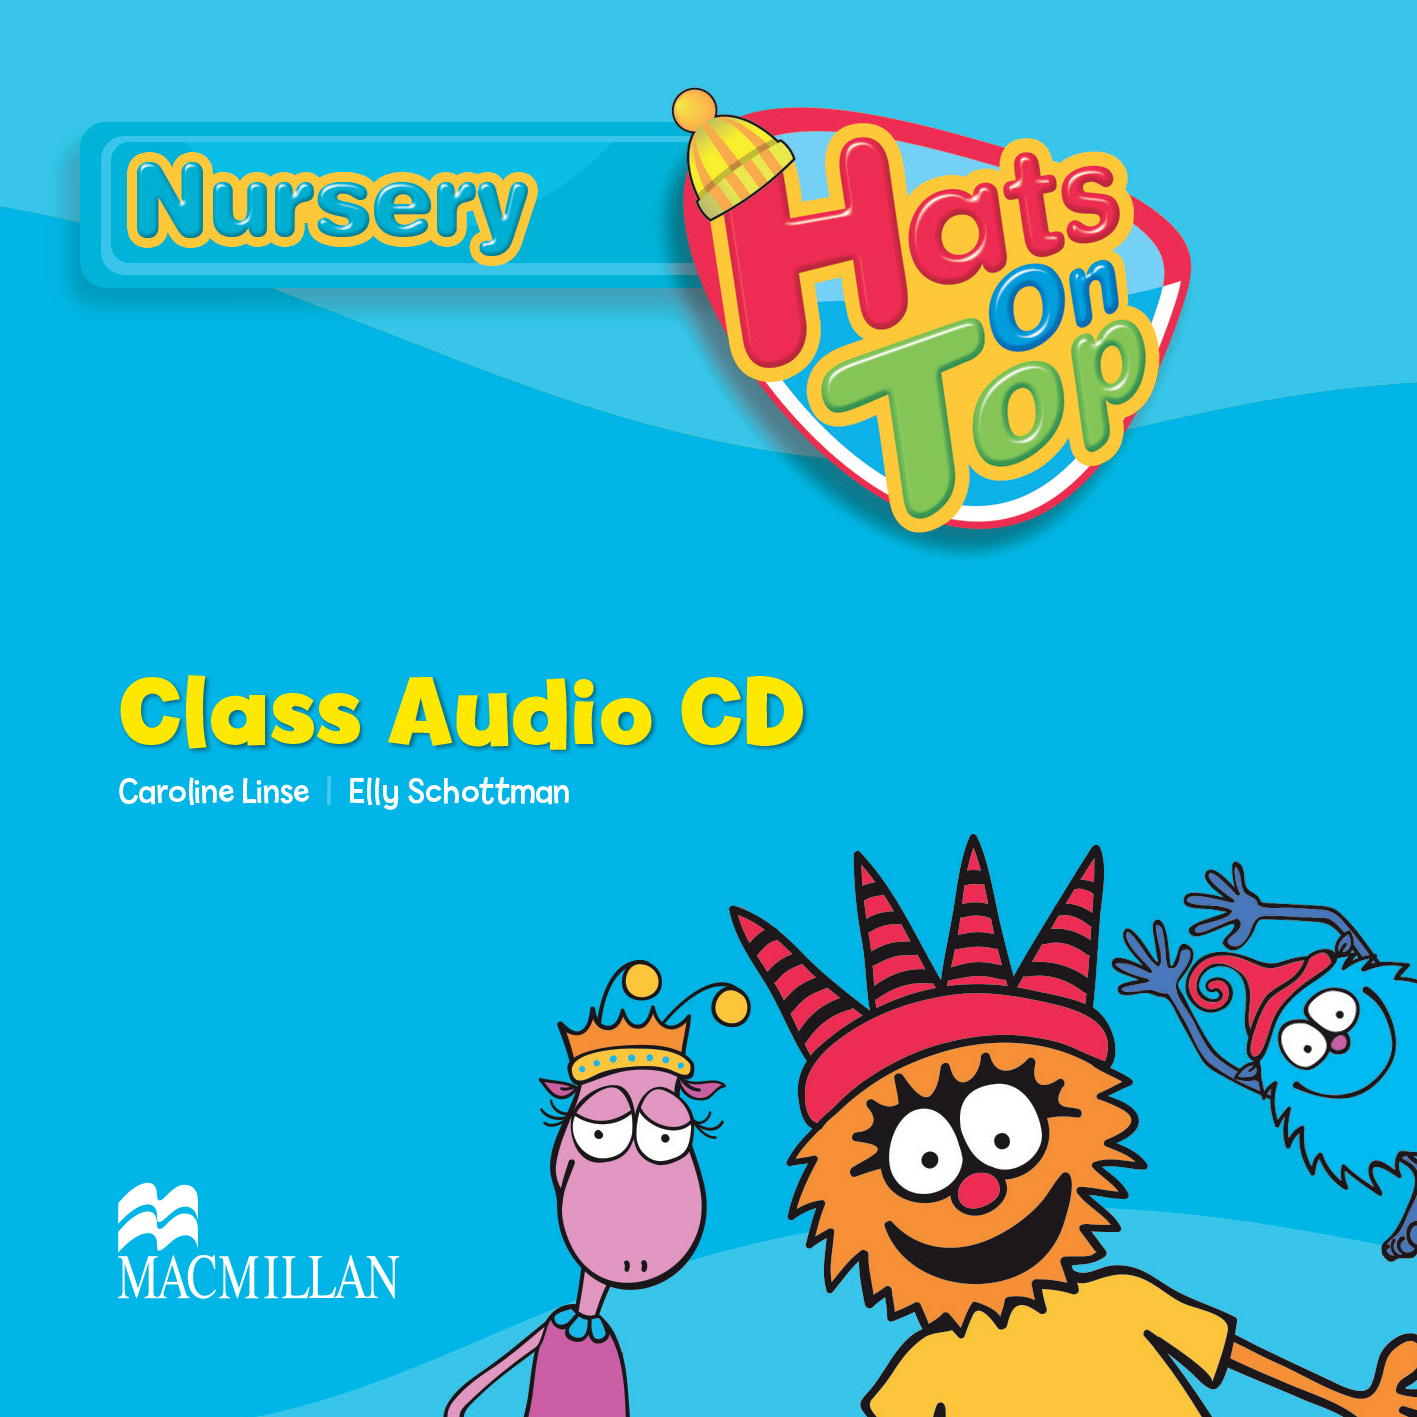 Hats On Top Nursery Class Audio CD